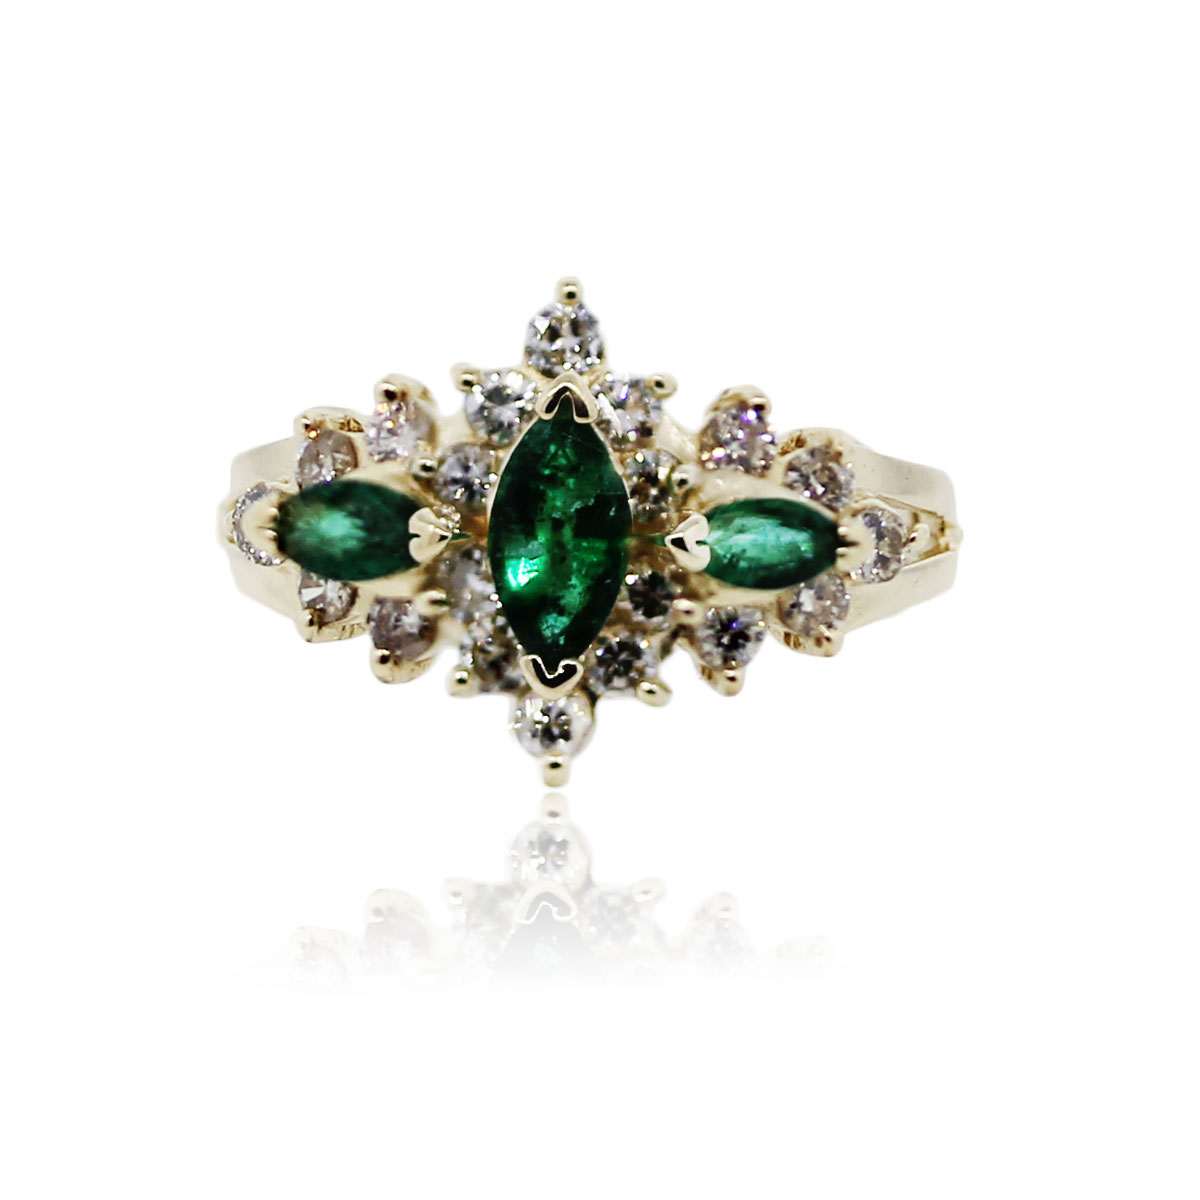 14k yellow gold marquise emerald and cocktail